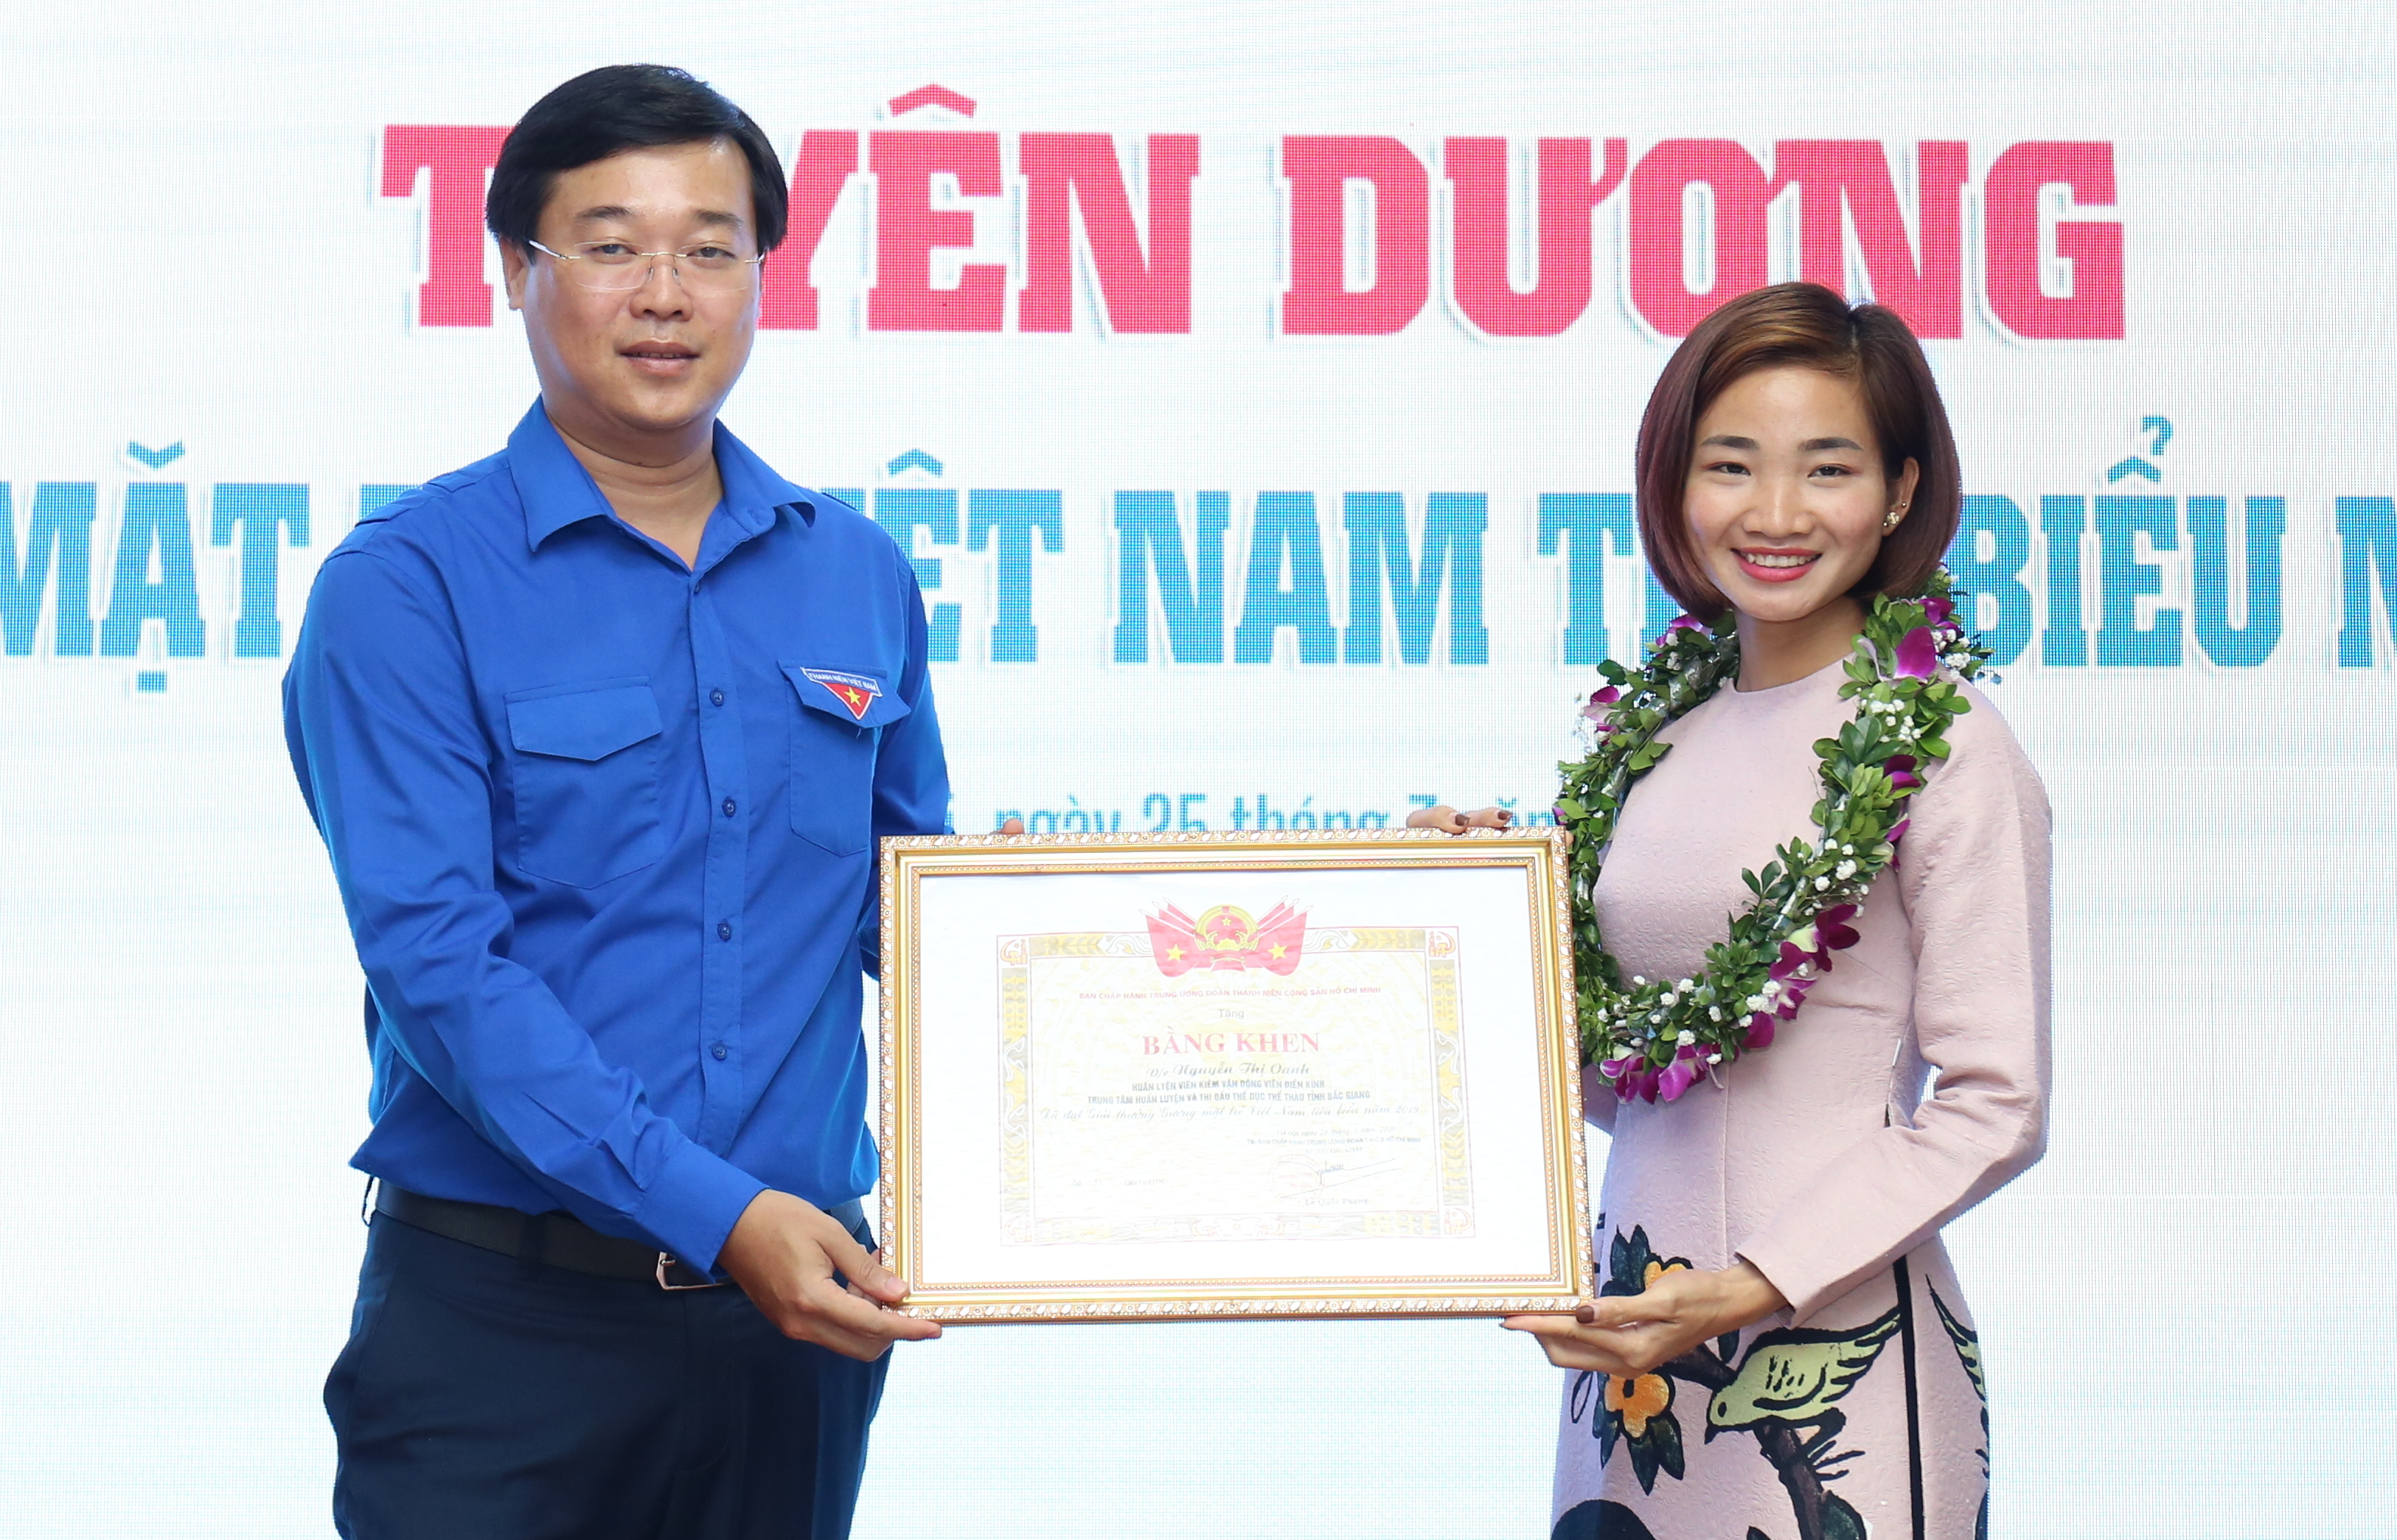 Mr. Le Quoc Phong giving the Prime Minister's Award of Merit to athlete Nguyen Thi Oanh